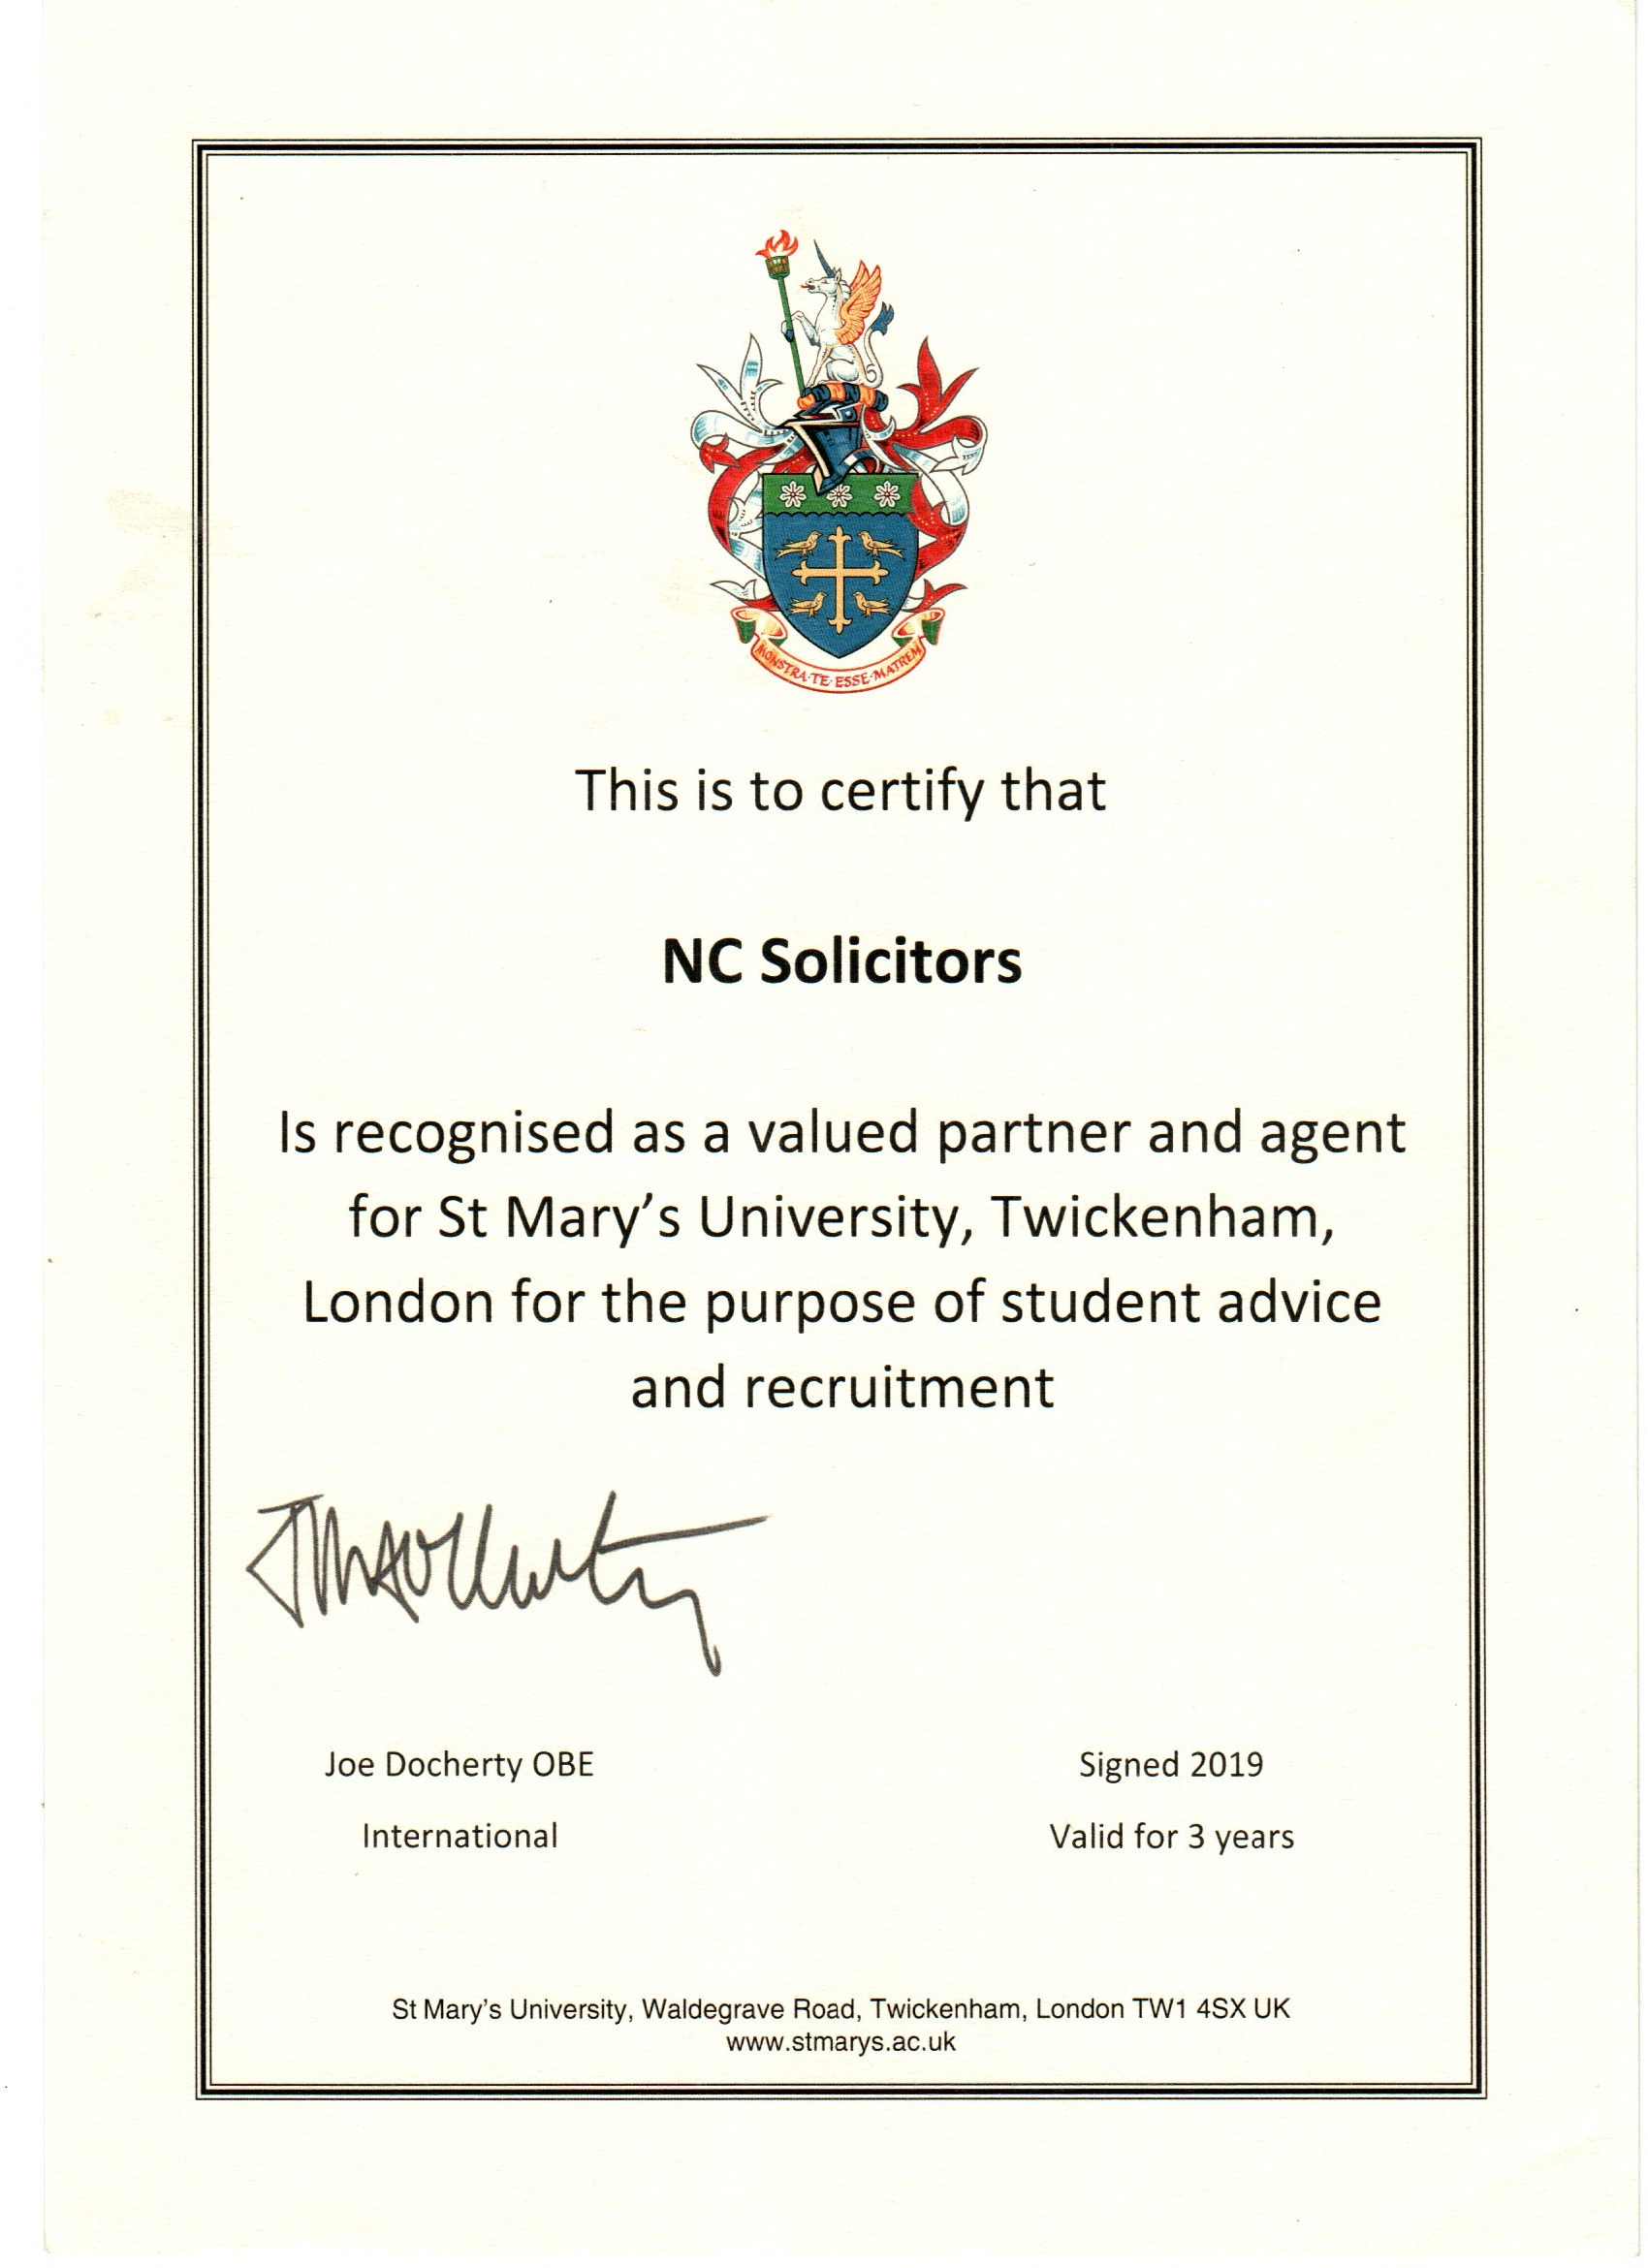 nc Solicitors certification